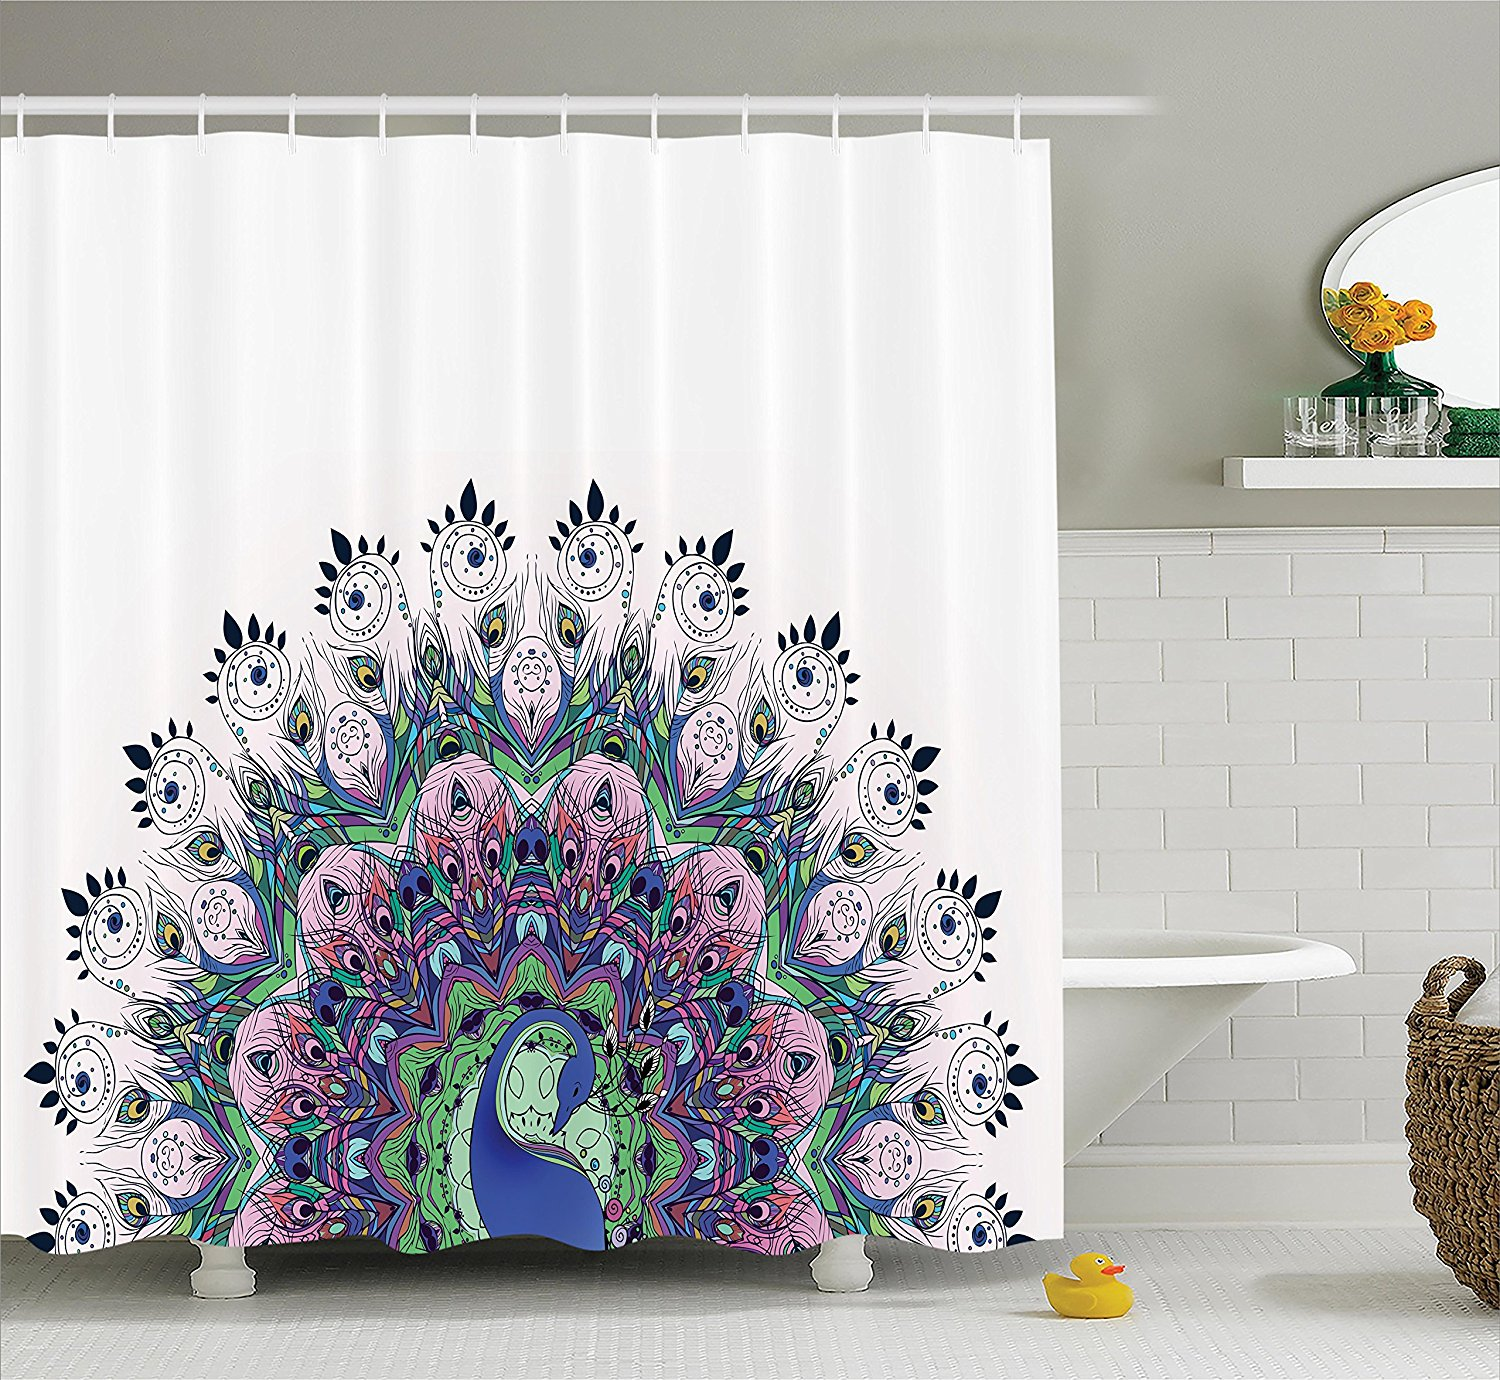 Peacock shower curtain hooks - Peacock Pattern And Exotic Wildlife Feather Ornament Vintage Oriental Image Polyester Fabric Bathroom Shower Curtain